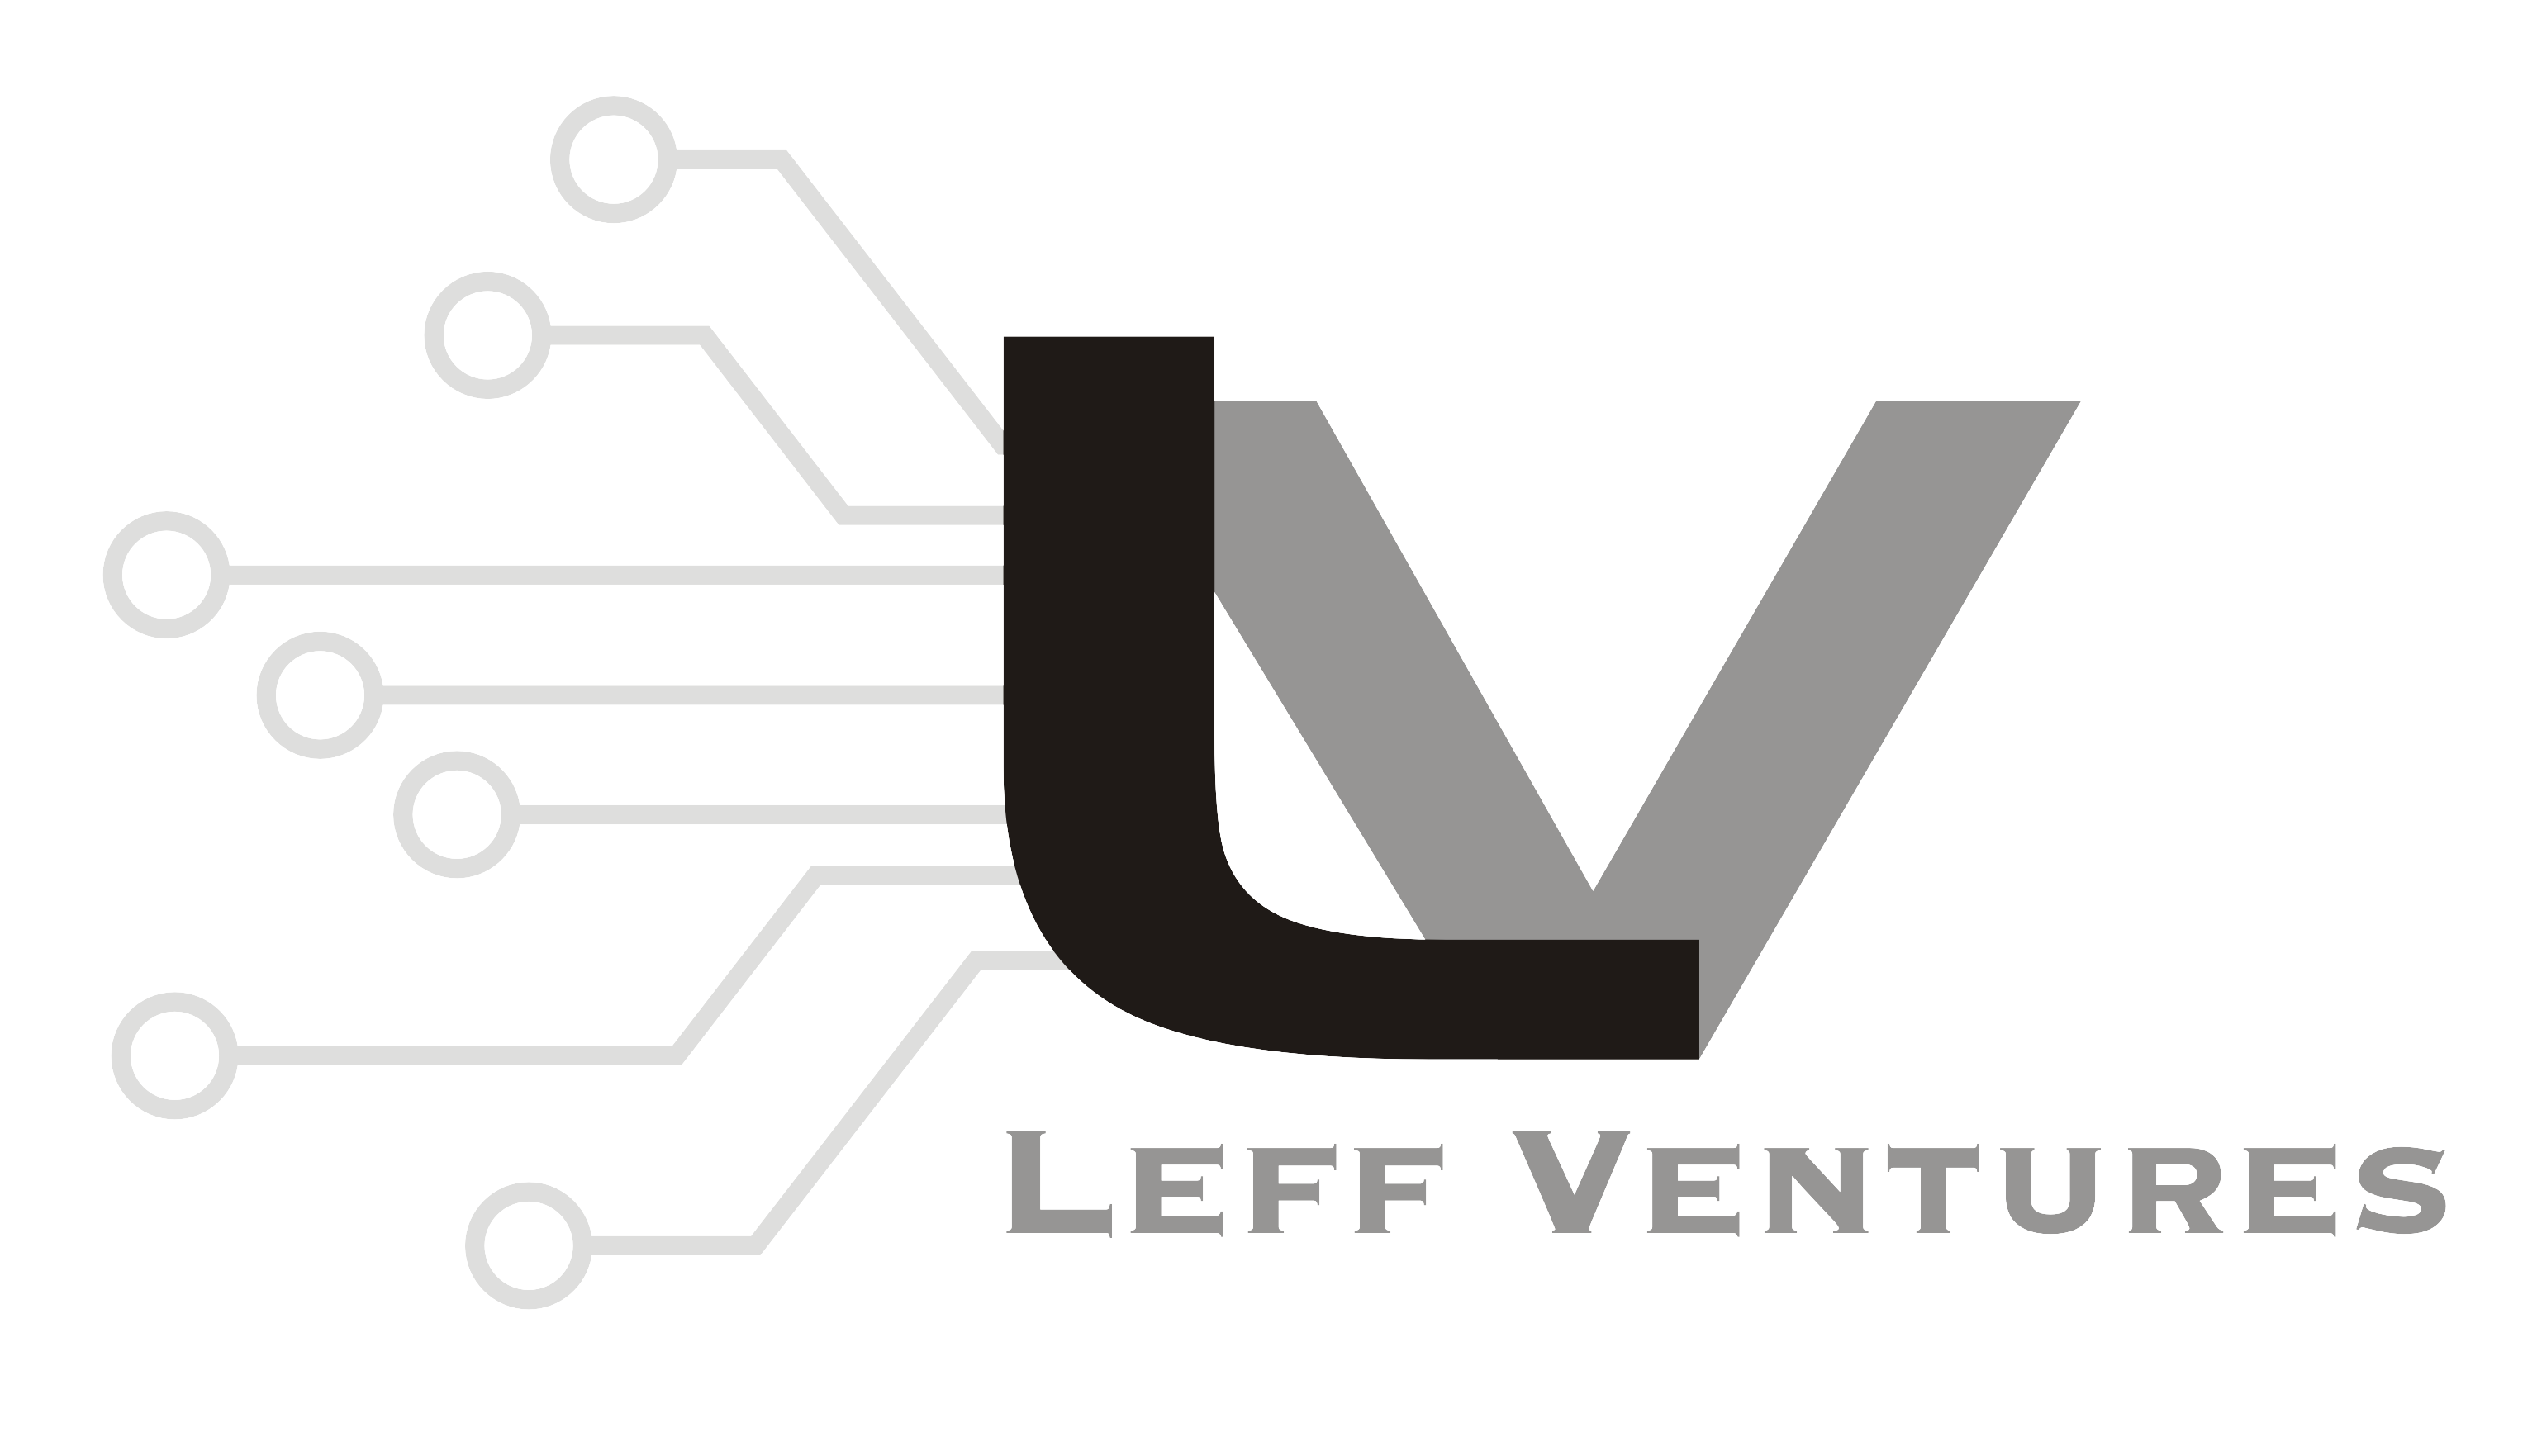 Leff Ventures summarizes everything Ben has learned from working as a consultant not just on ICO projects but for clients across the world, including Australia, Malta, Mauritius, The UAE, and Vietnam. By establishing strategic partnerships, Leff Ventures can accelerate your project, idea, or business to new levels with greater efficiency and stronger networking power.